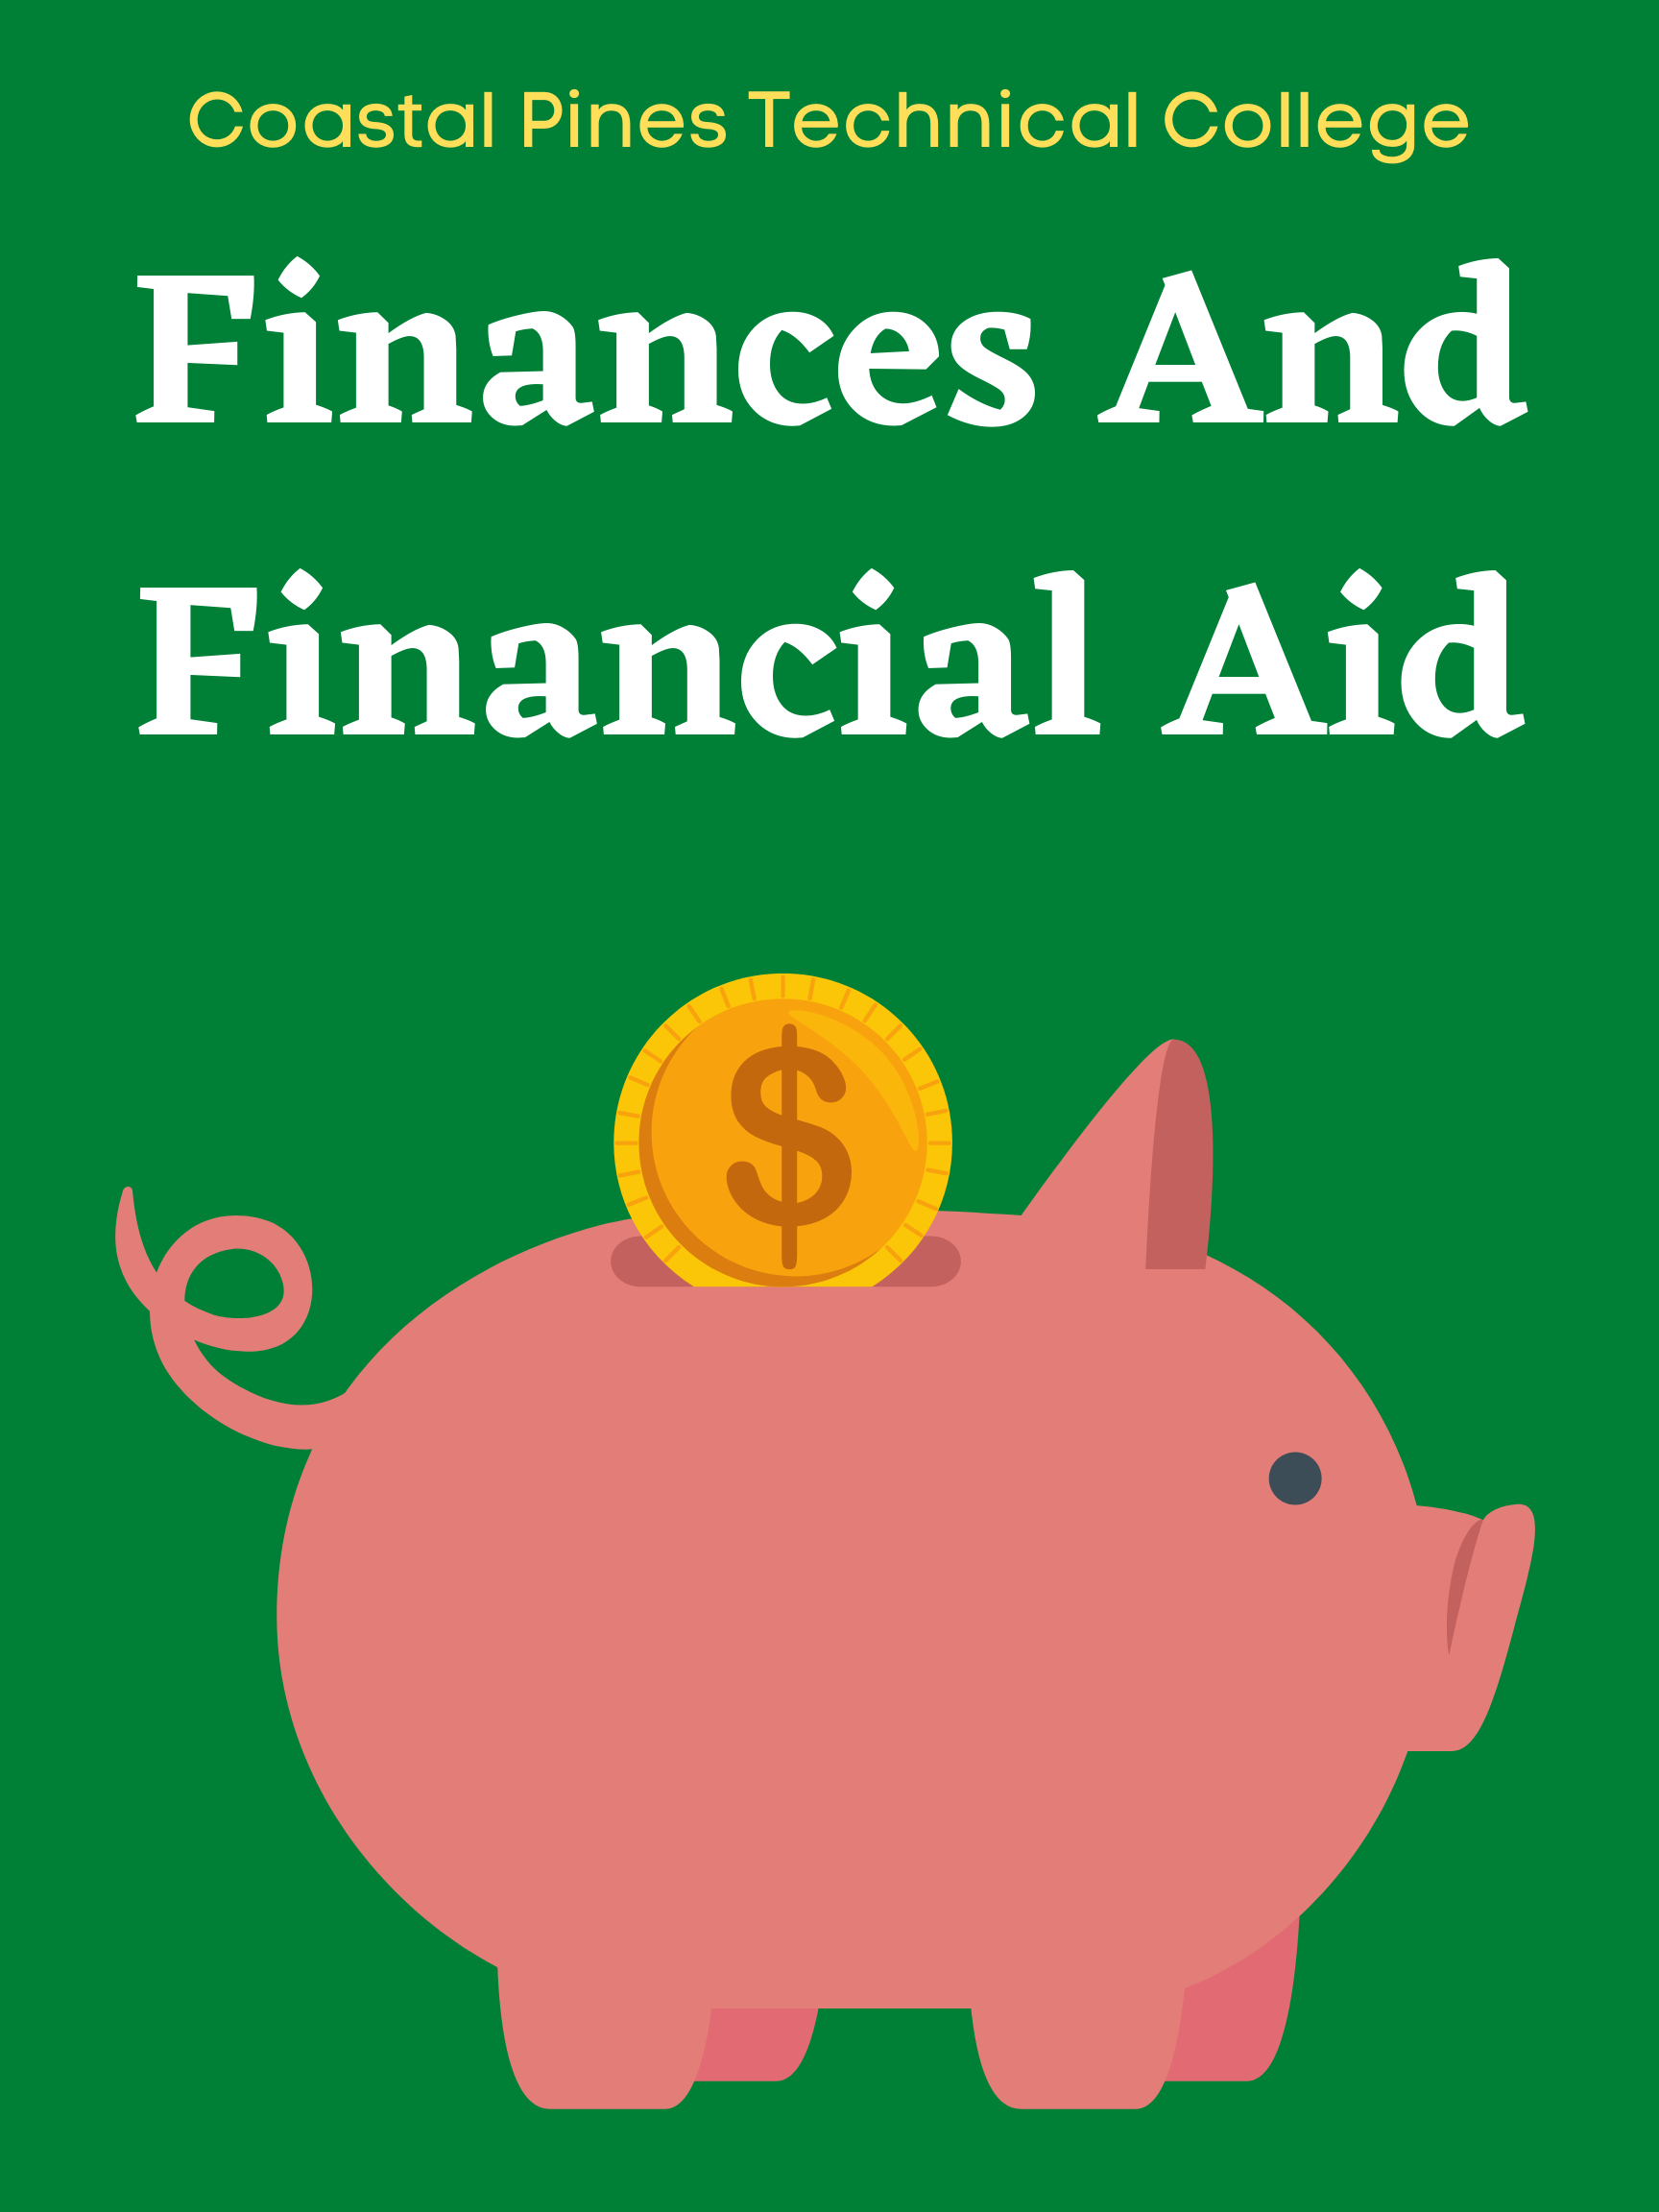 Coastal Pines Technical College Finances and Financial Aid